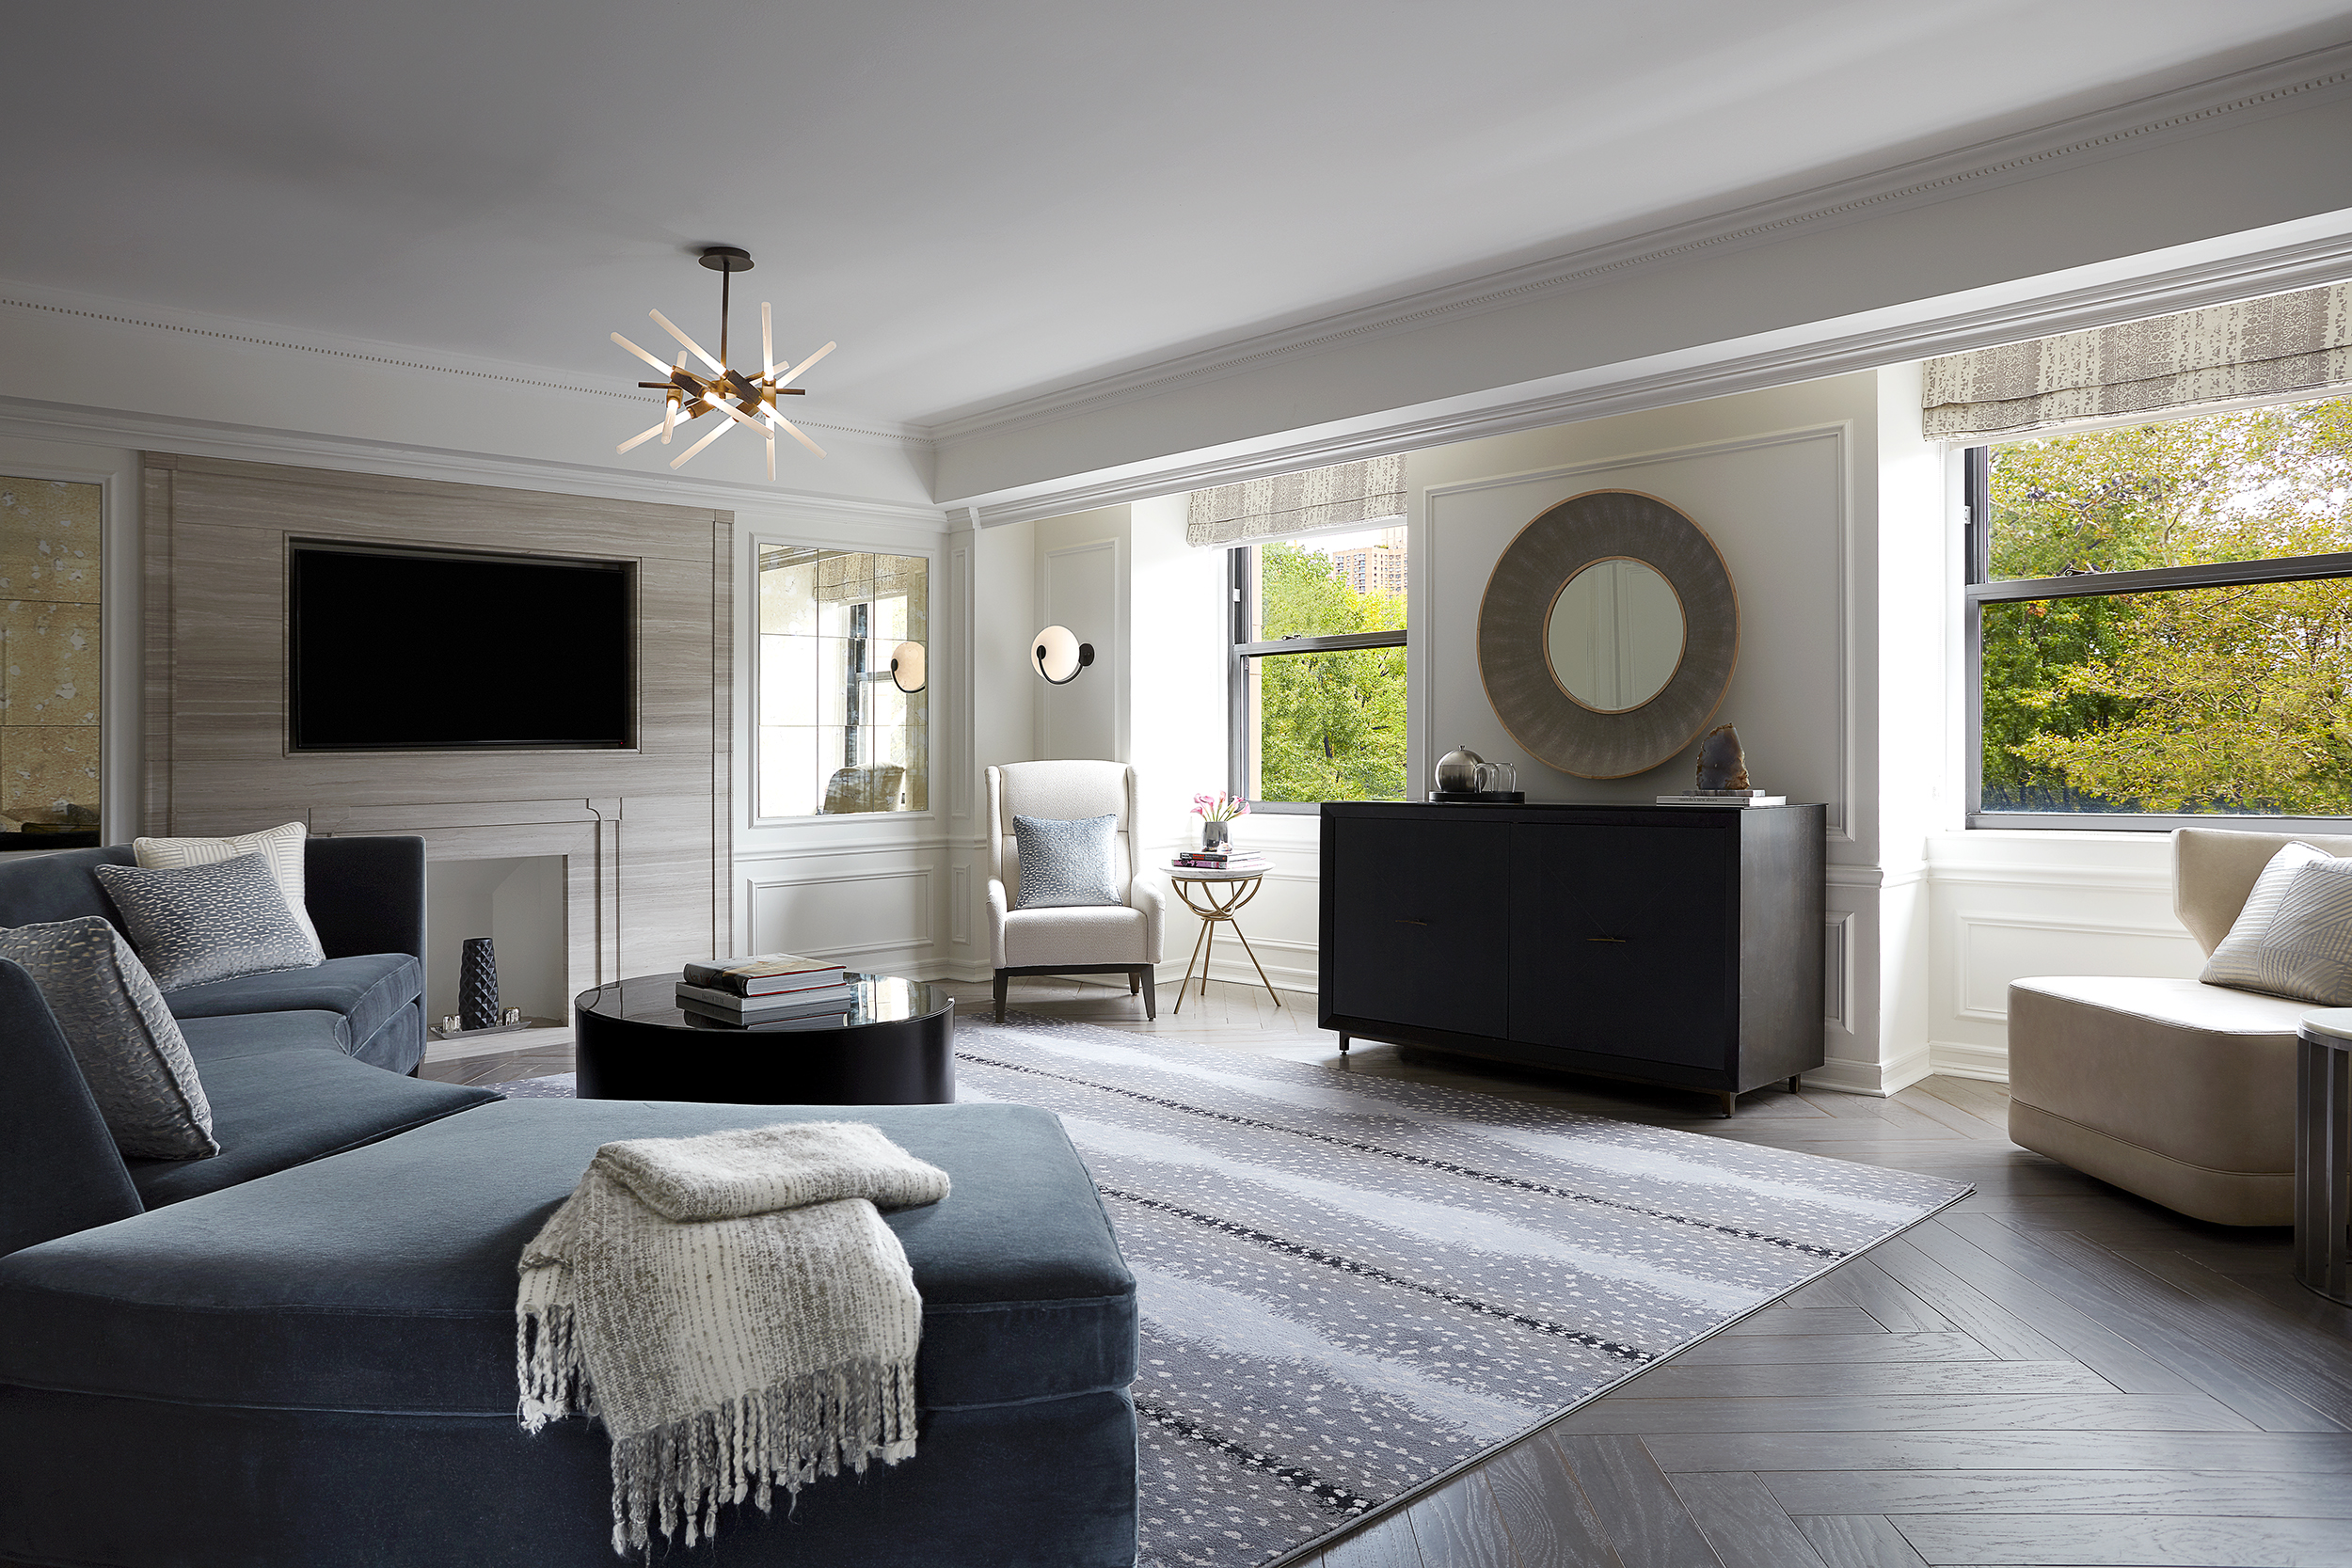 JW Marriott Essex House New York Deluxe Suite with Central park view